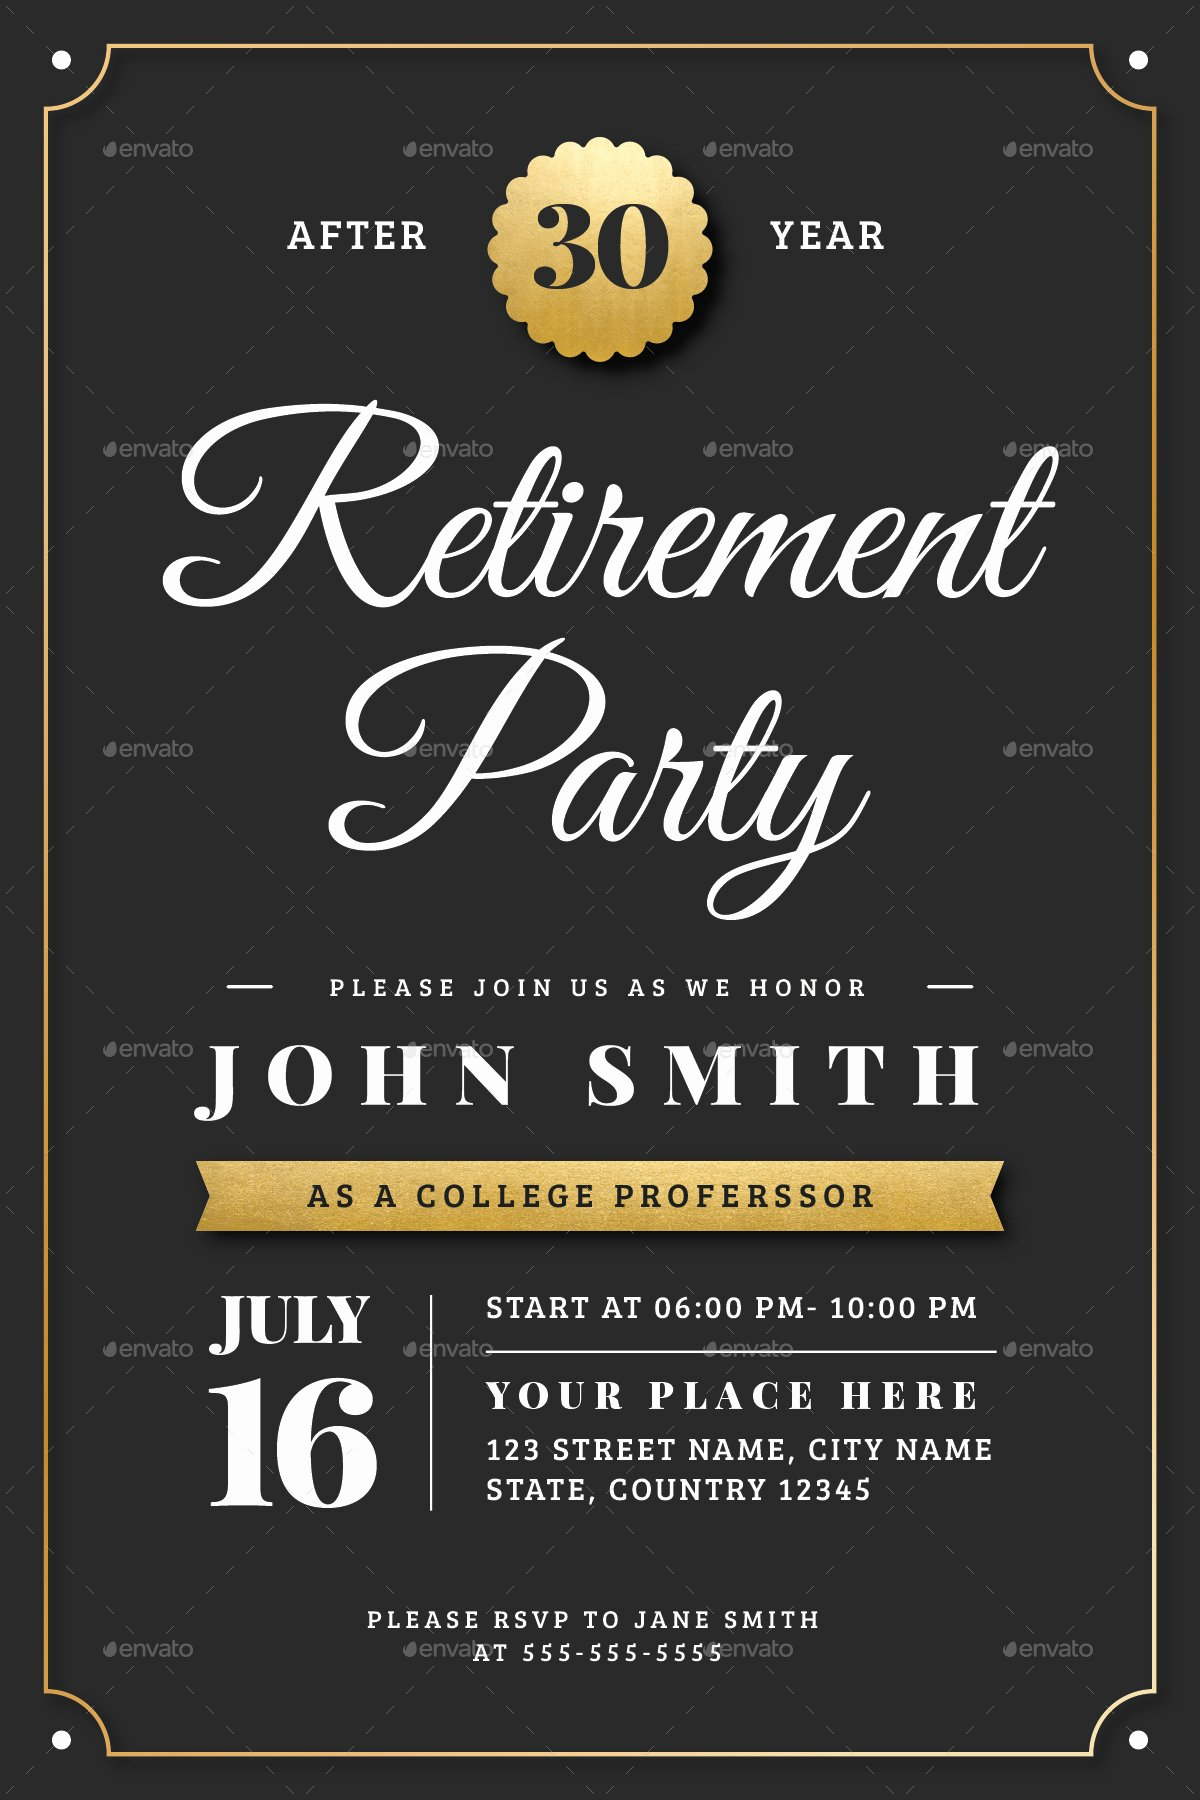 Retirement Party Invitations Template Fresh Gold Retirement Invitation Flyer Templates by Vector